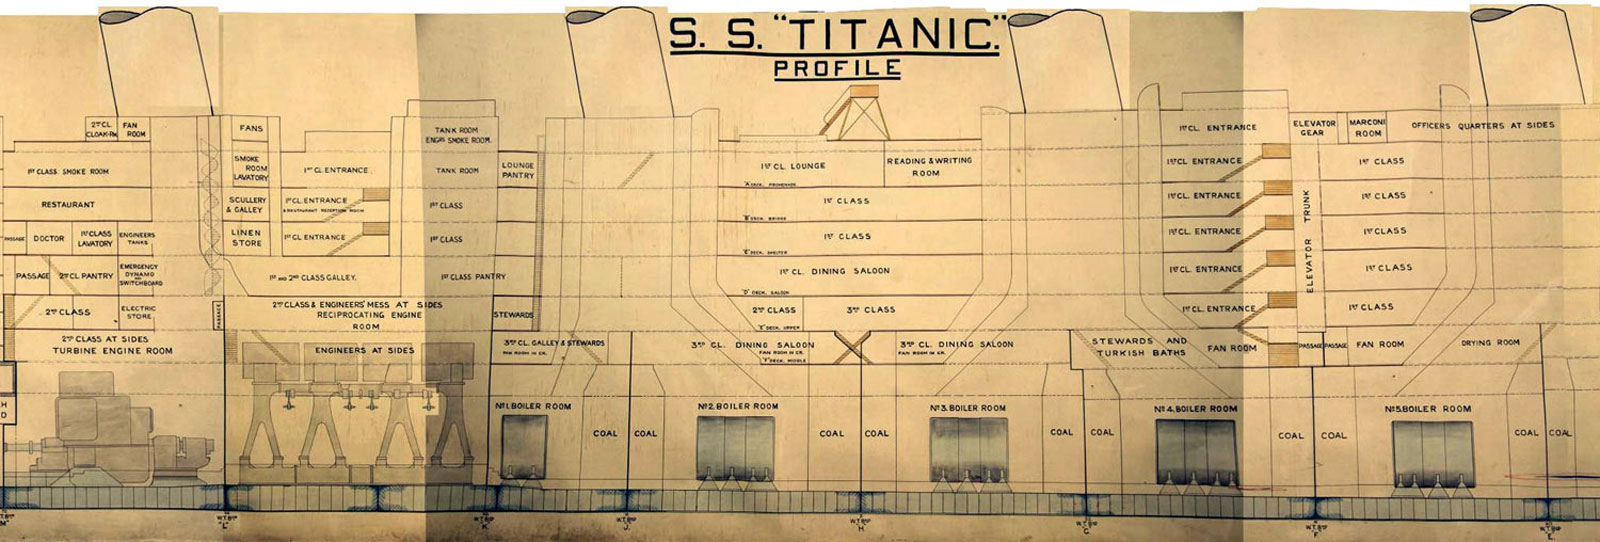 Part of the original 9.9 metre by 1.46 metre plan used in the British Enquiry into the sinking of the Titanic i